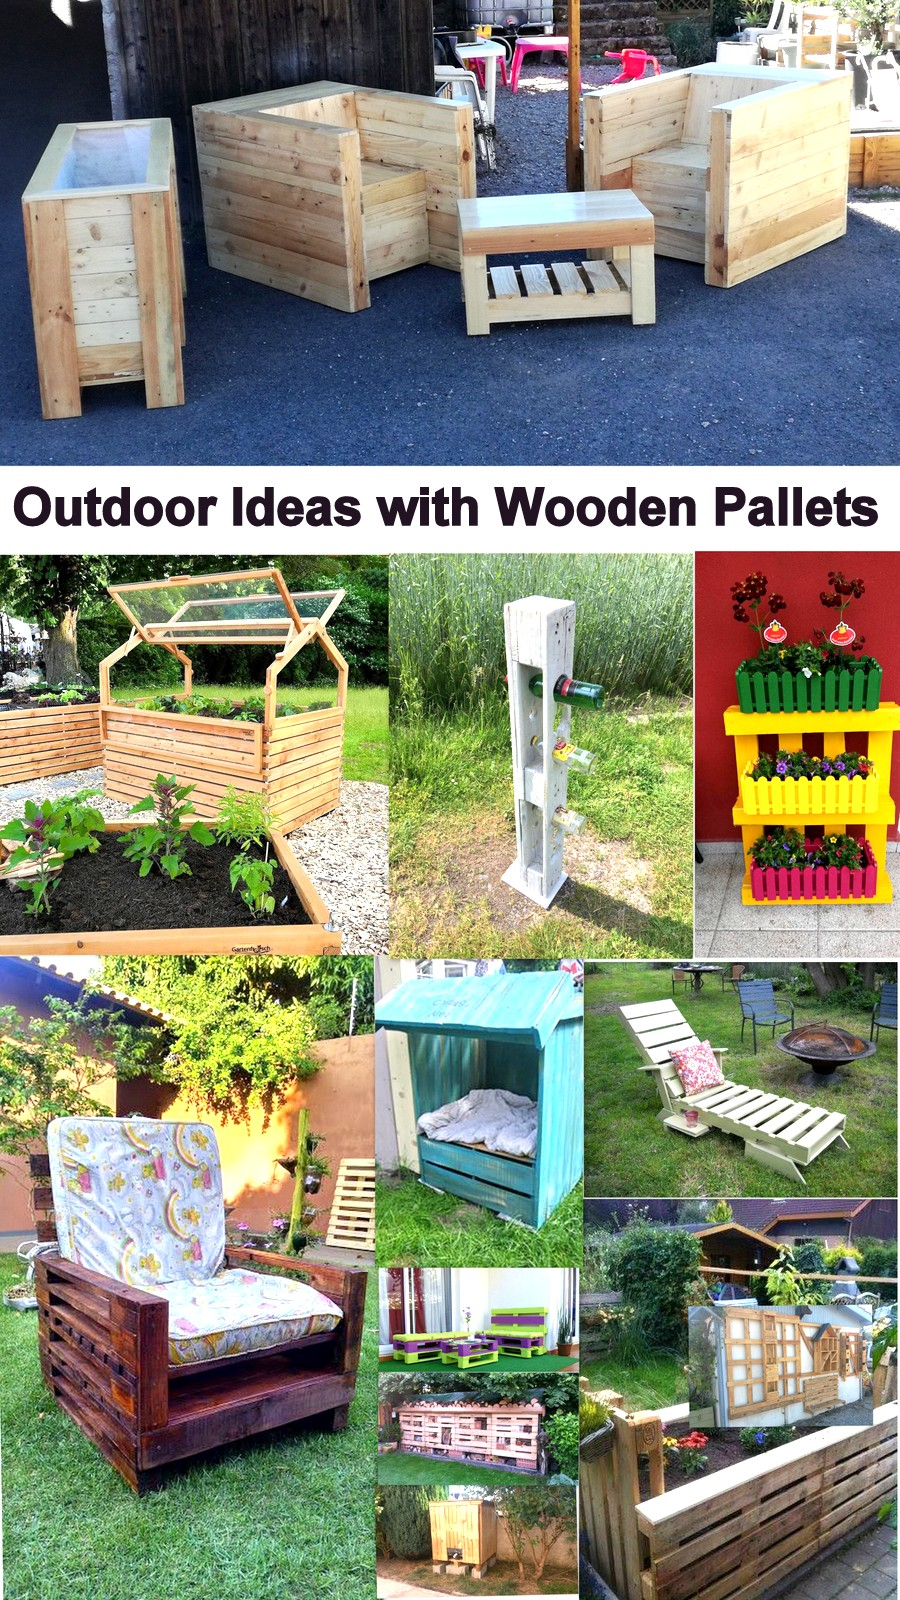 Outdoor ideas with wooden pallets pallet ideas recycled for Outdoor ideas for wood pallets